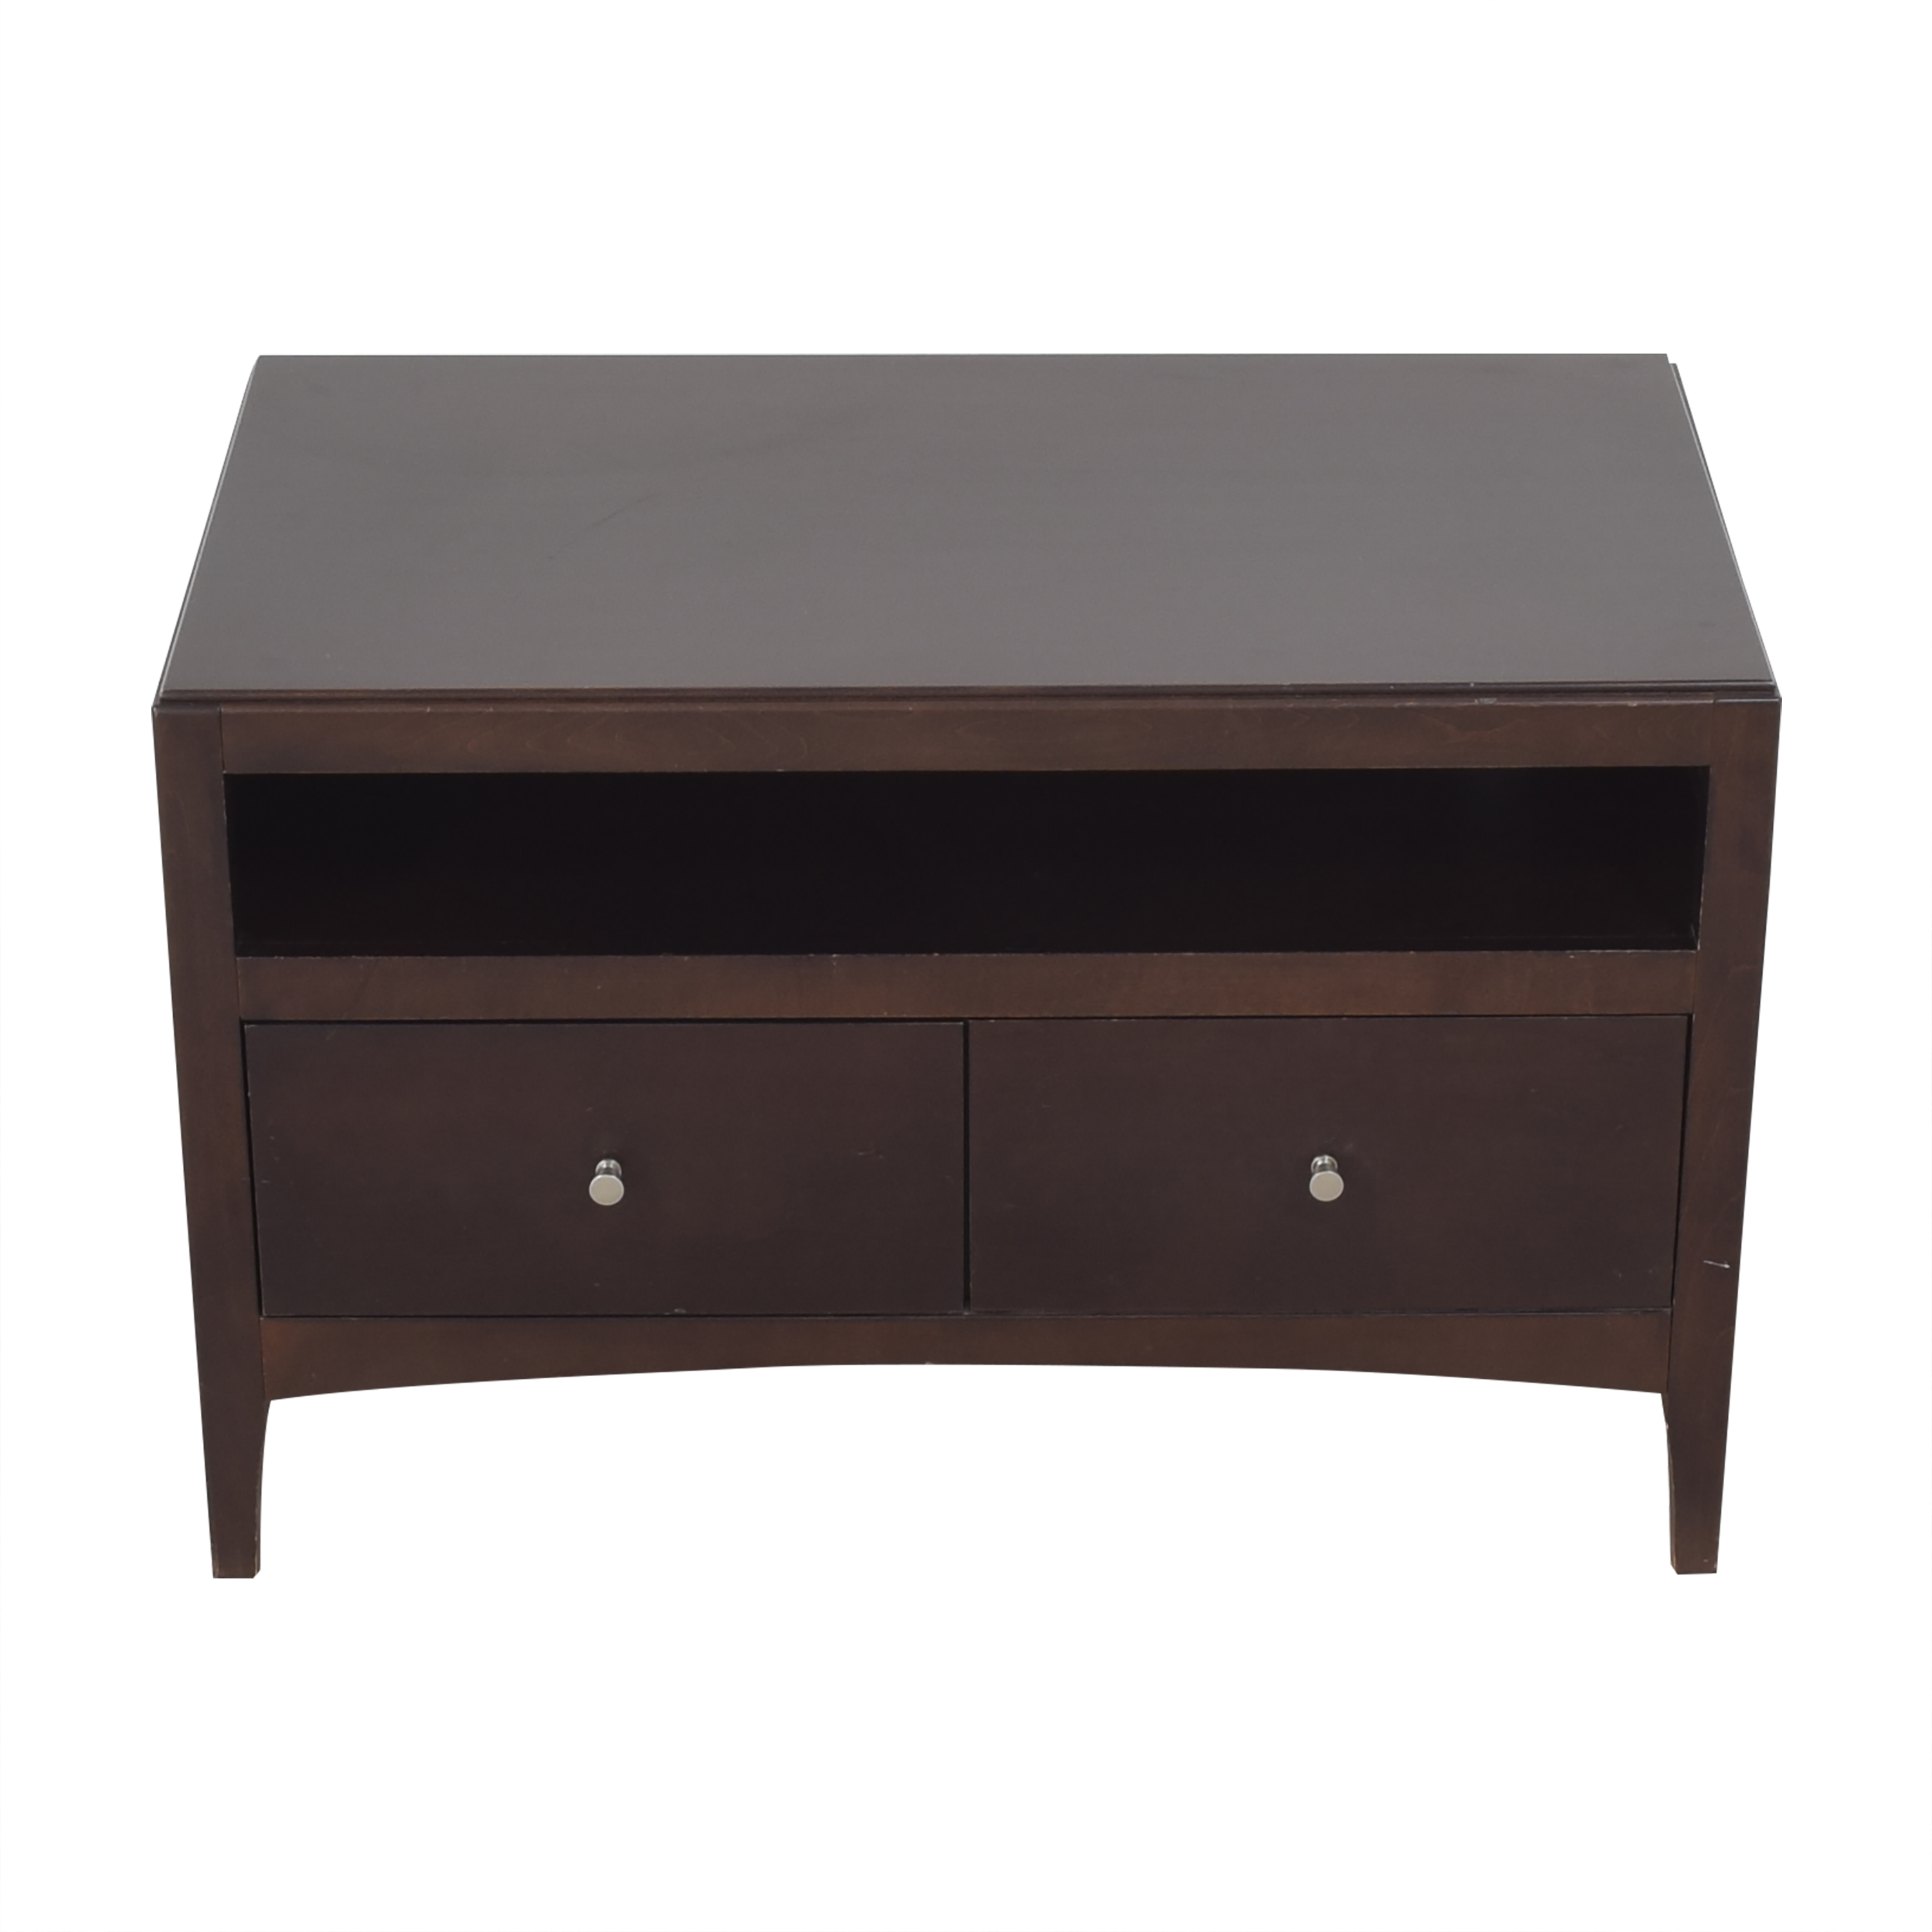 Two Drawer Media Console used